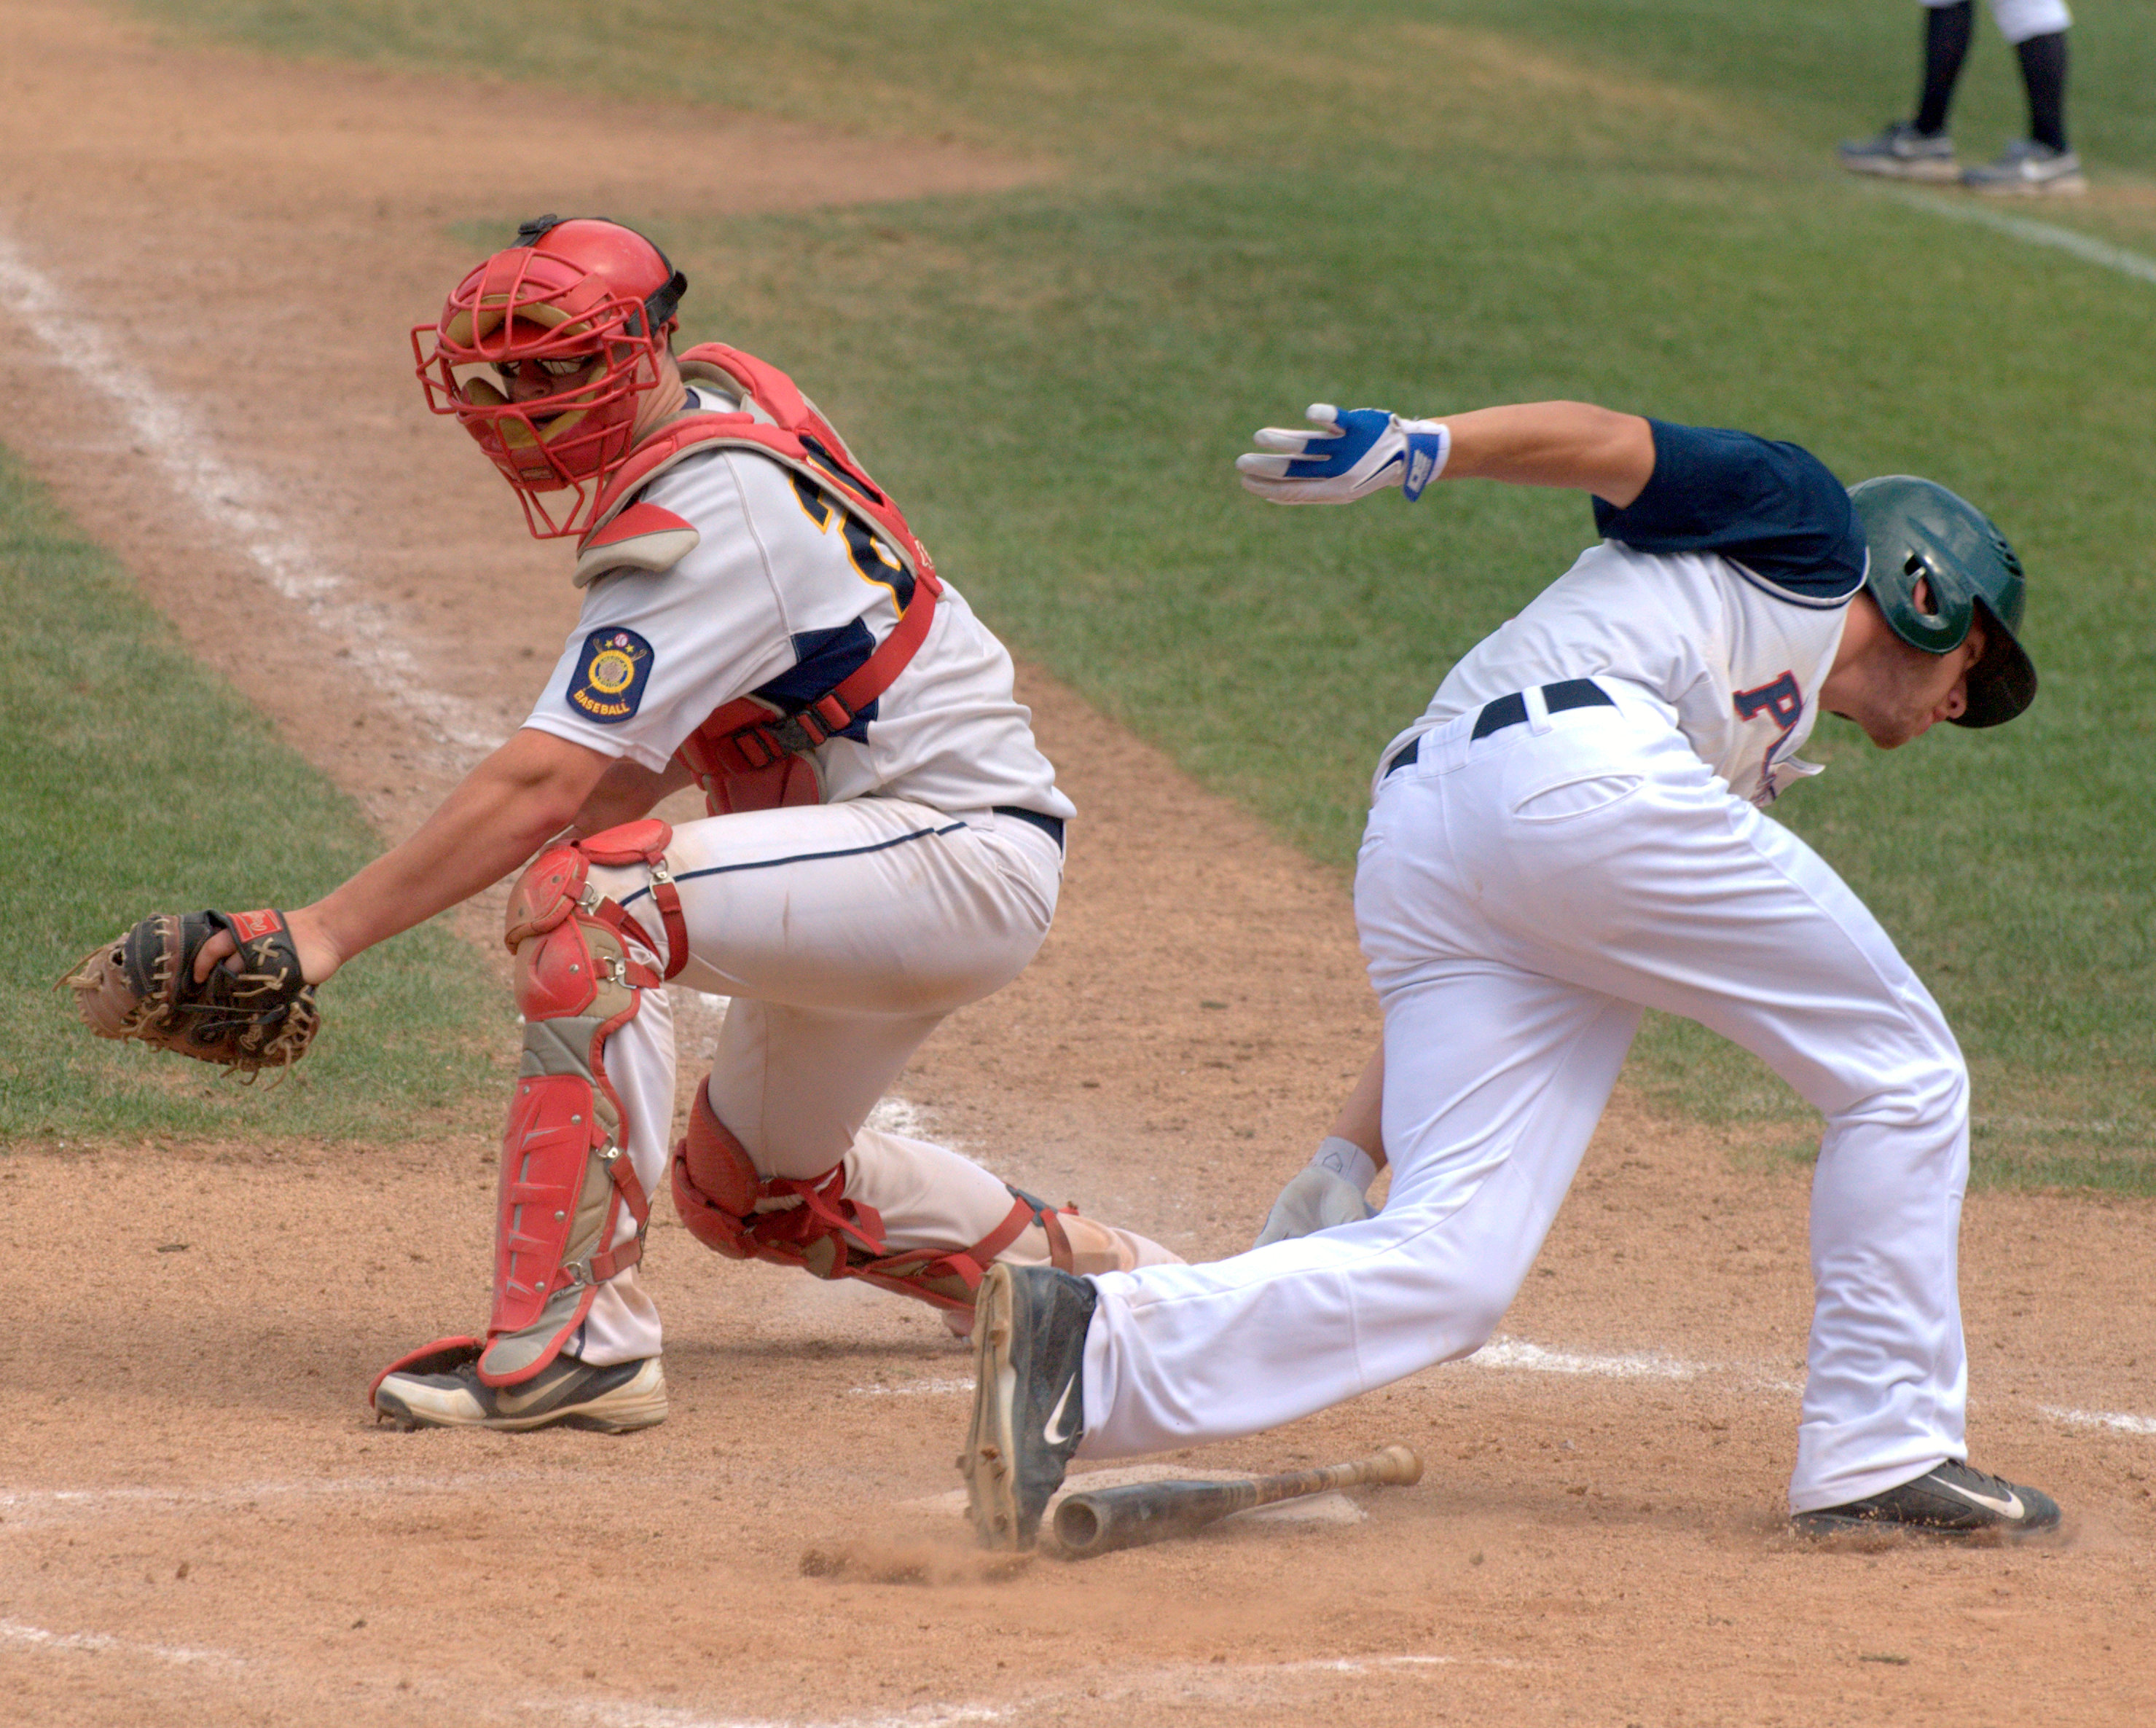 Dover's Mike Wasserman scores a run before Hudson's Greg Emanuelson can make a tag during Saturday's game.